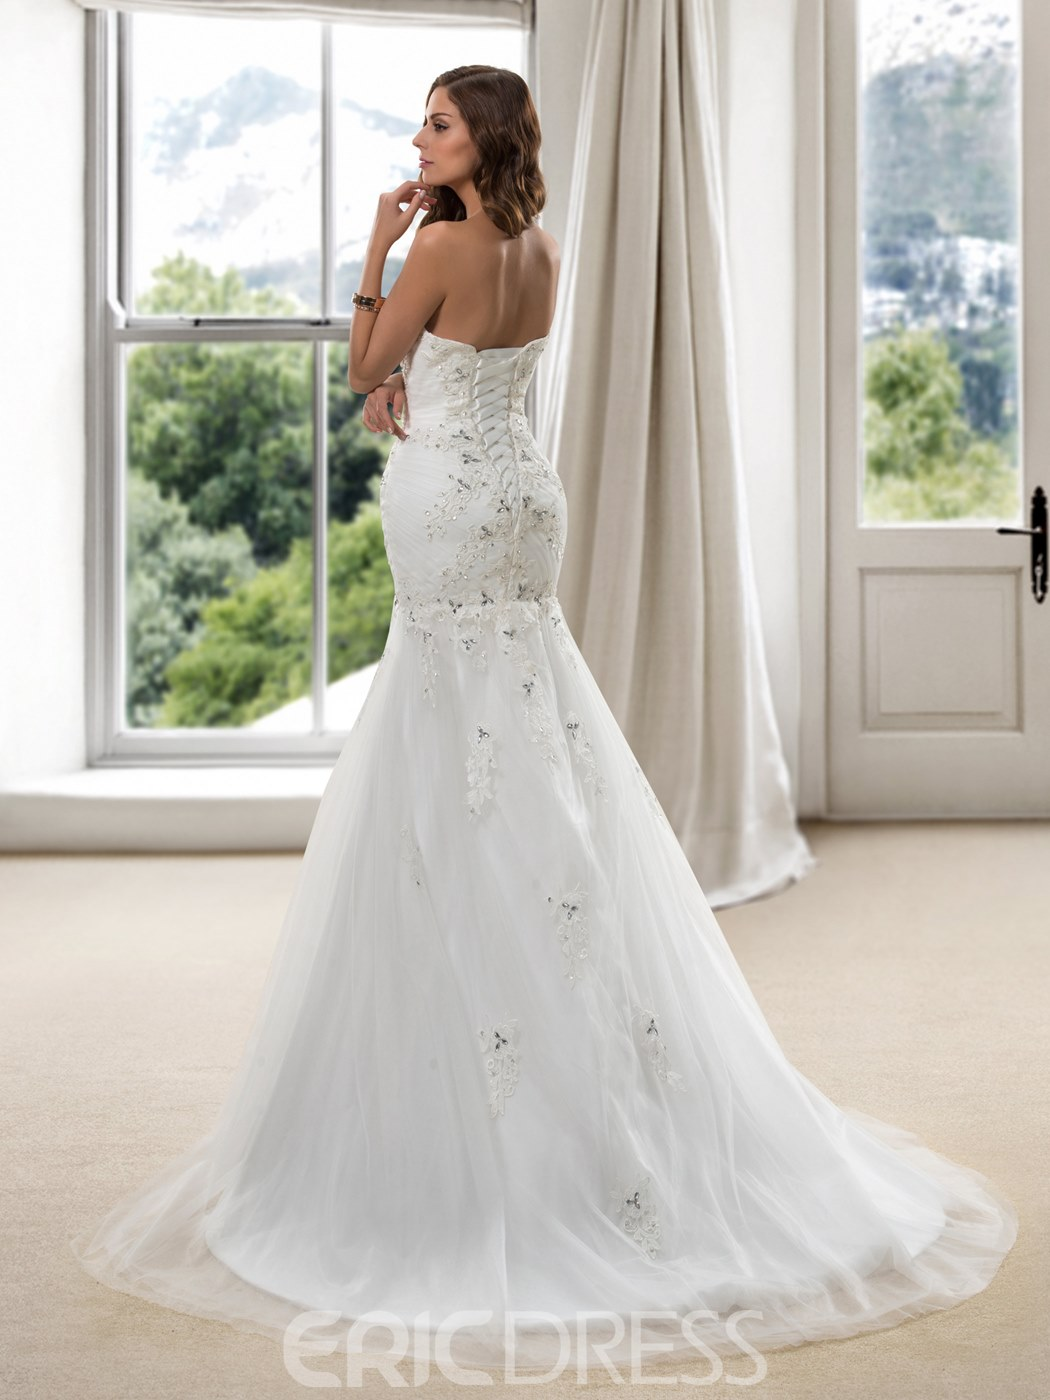 Charming Beaded Sweetheart Lace Appliques Mermaid Wedding Dress